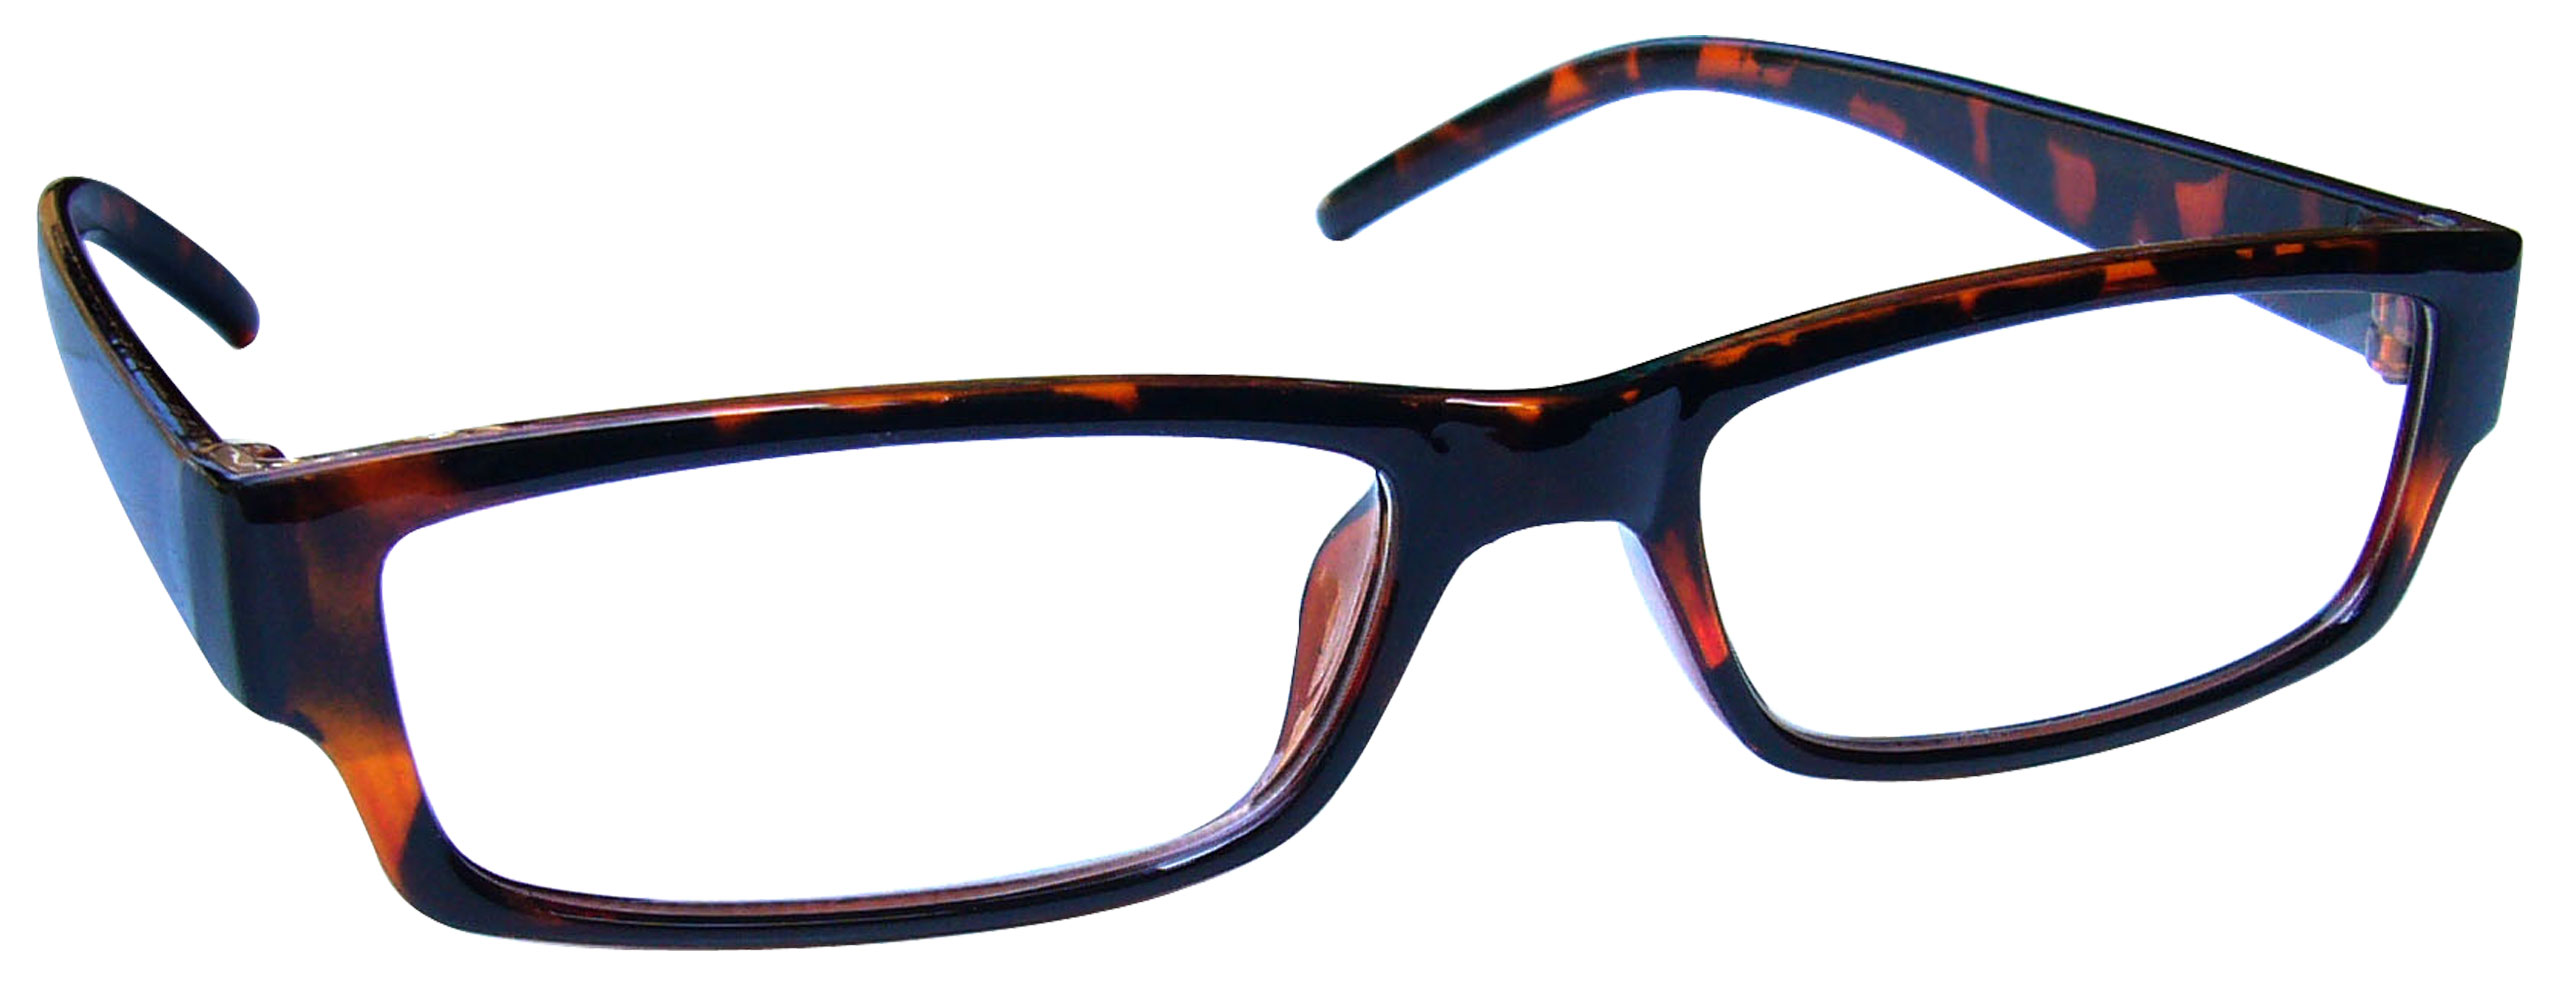 reading glasses mens womens lightweight designer style uv